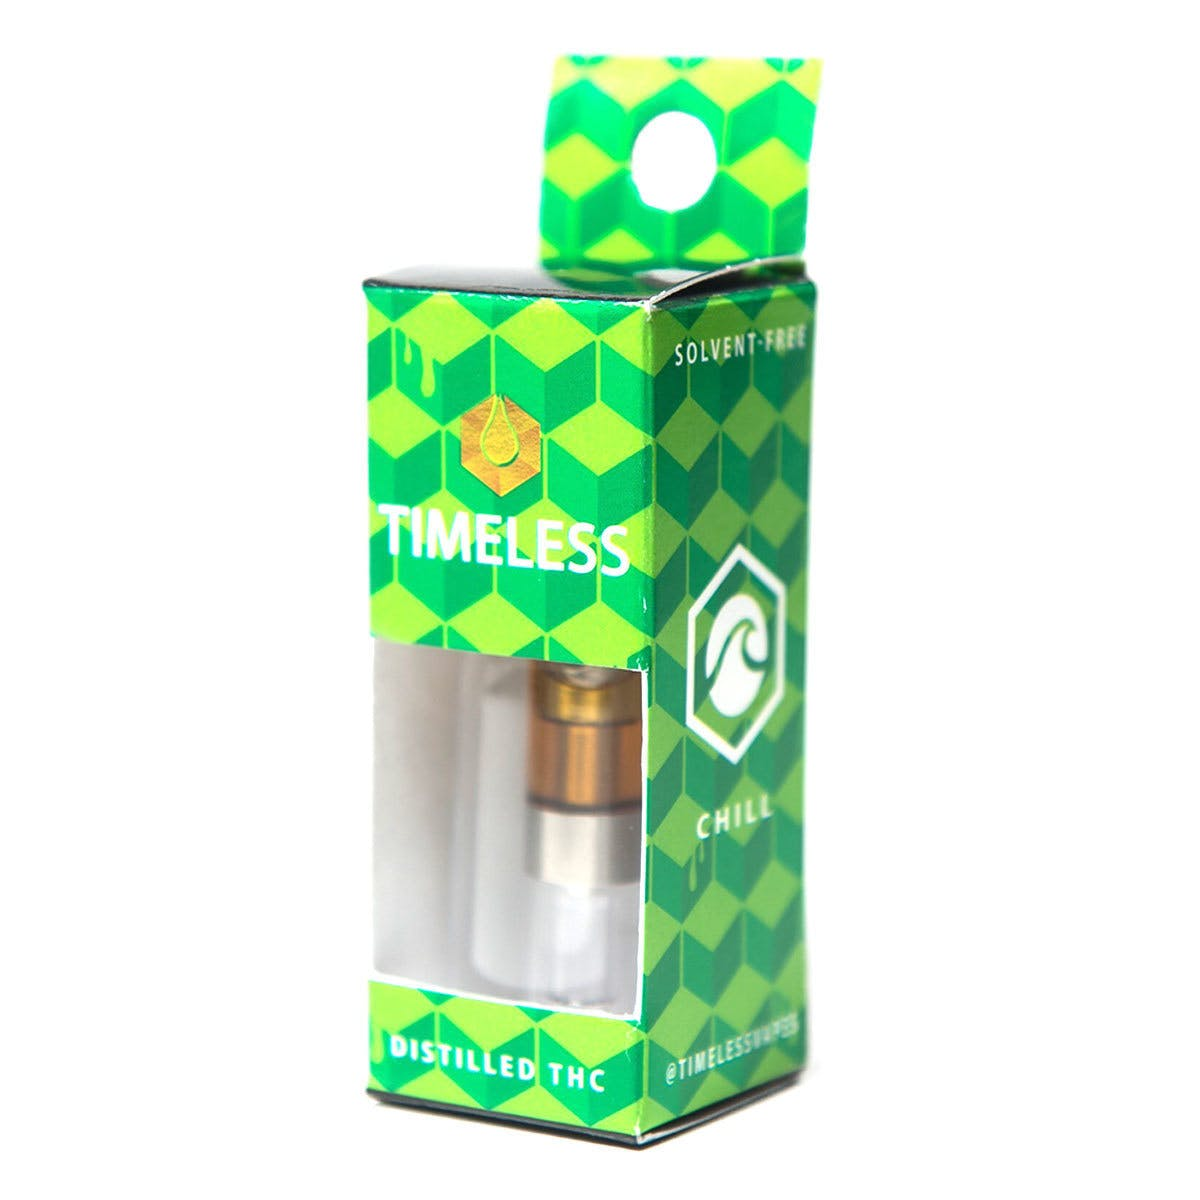 concentrate-timeless-vapes-1000mg-pineapple-express-vape-cartridge-chill